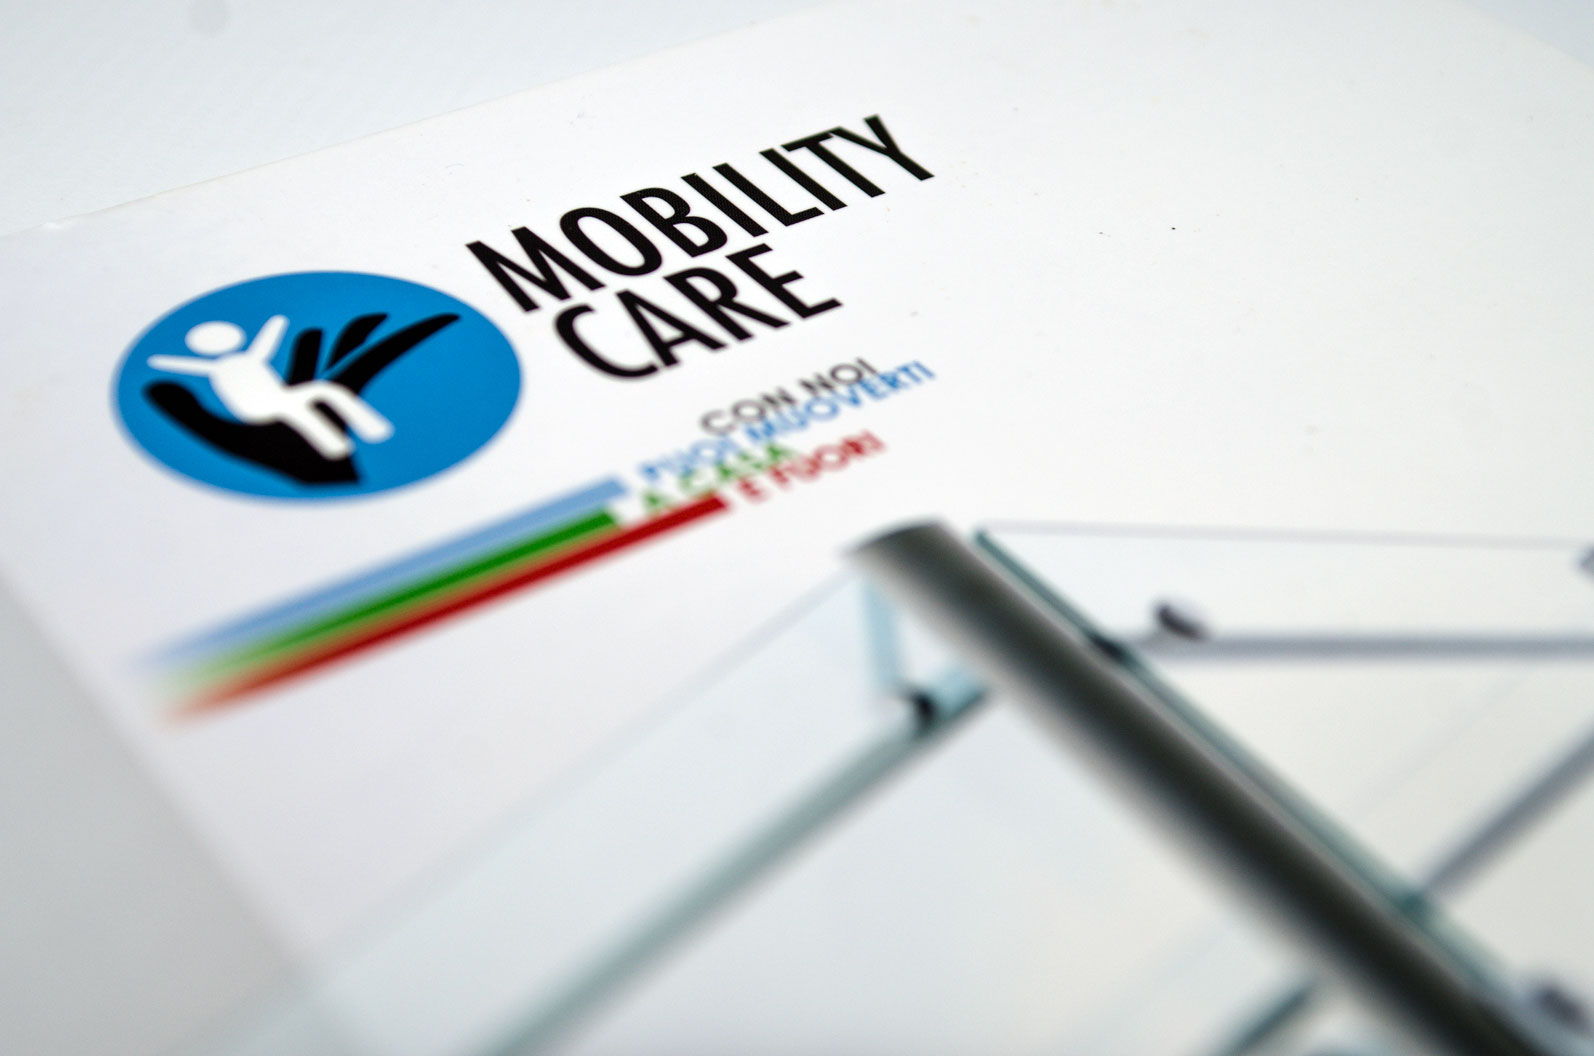 MOBILITY_A